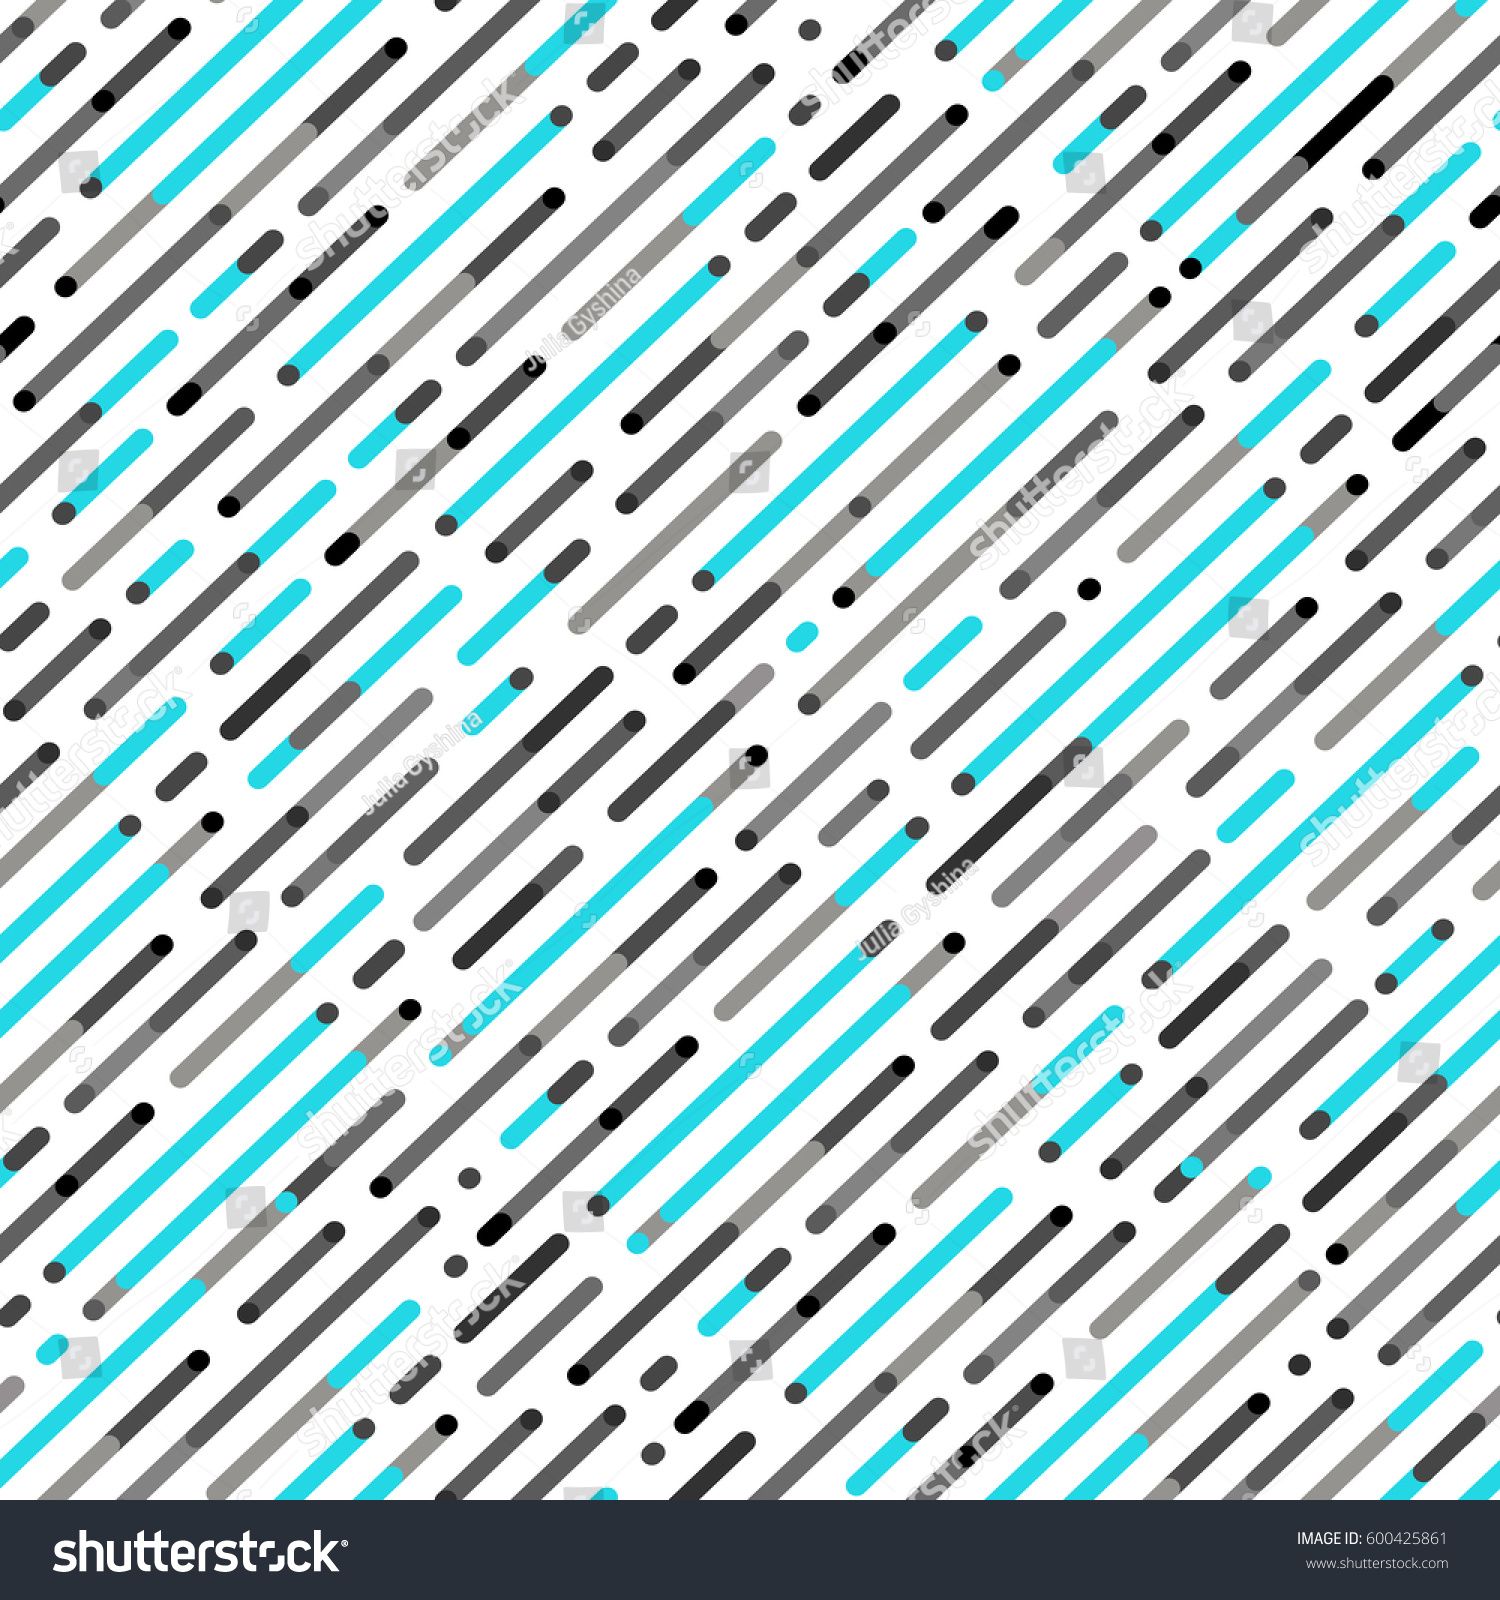 2 background images overlapping - Vector Seamless Parallel Diagonal Overlapping Color Lines Pattern Background